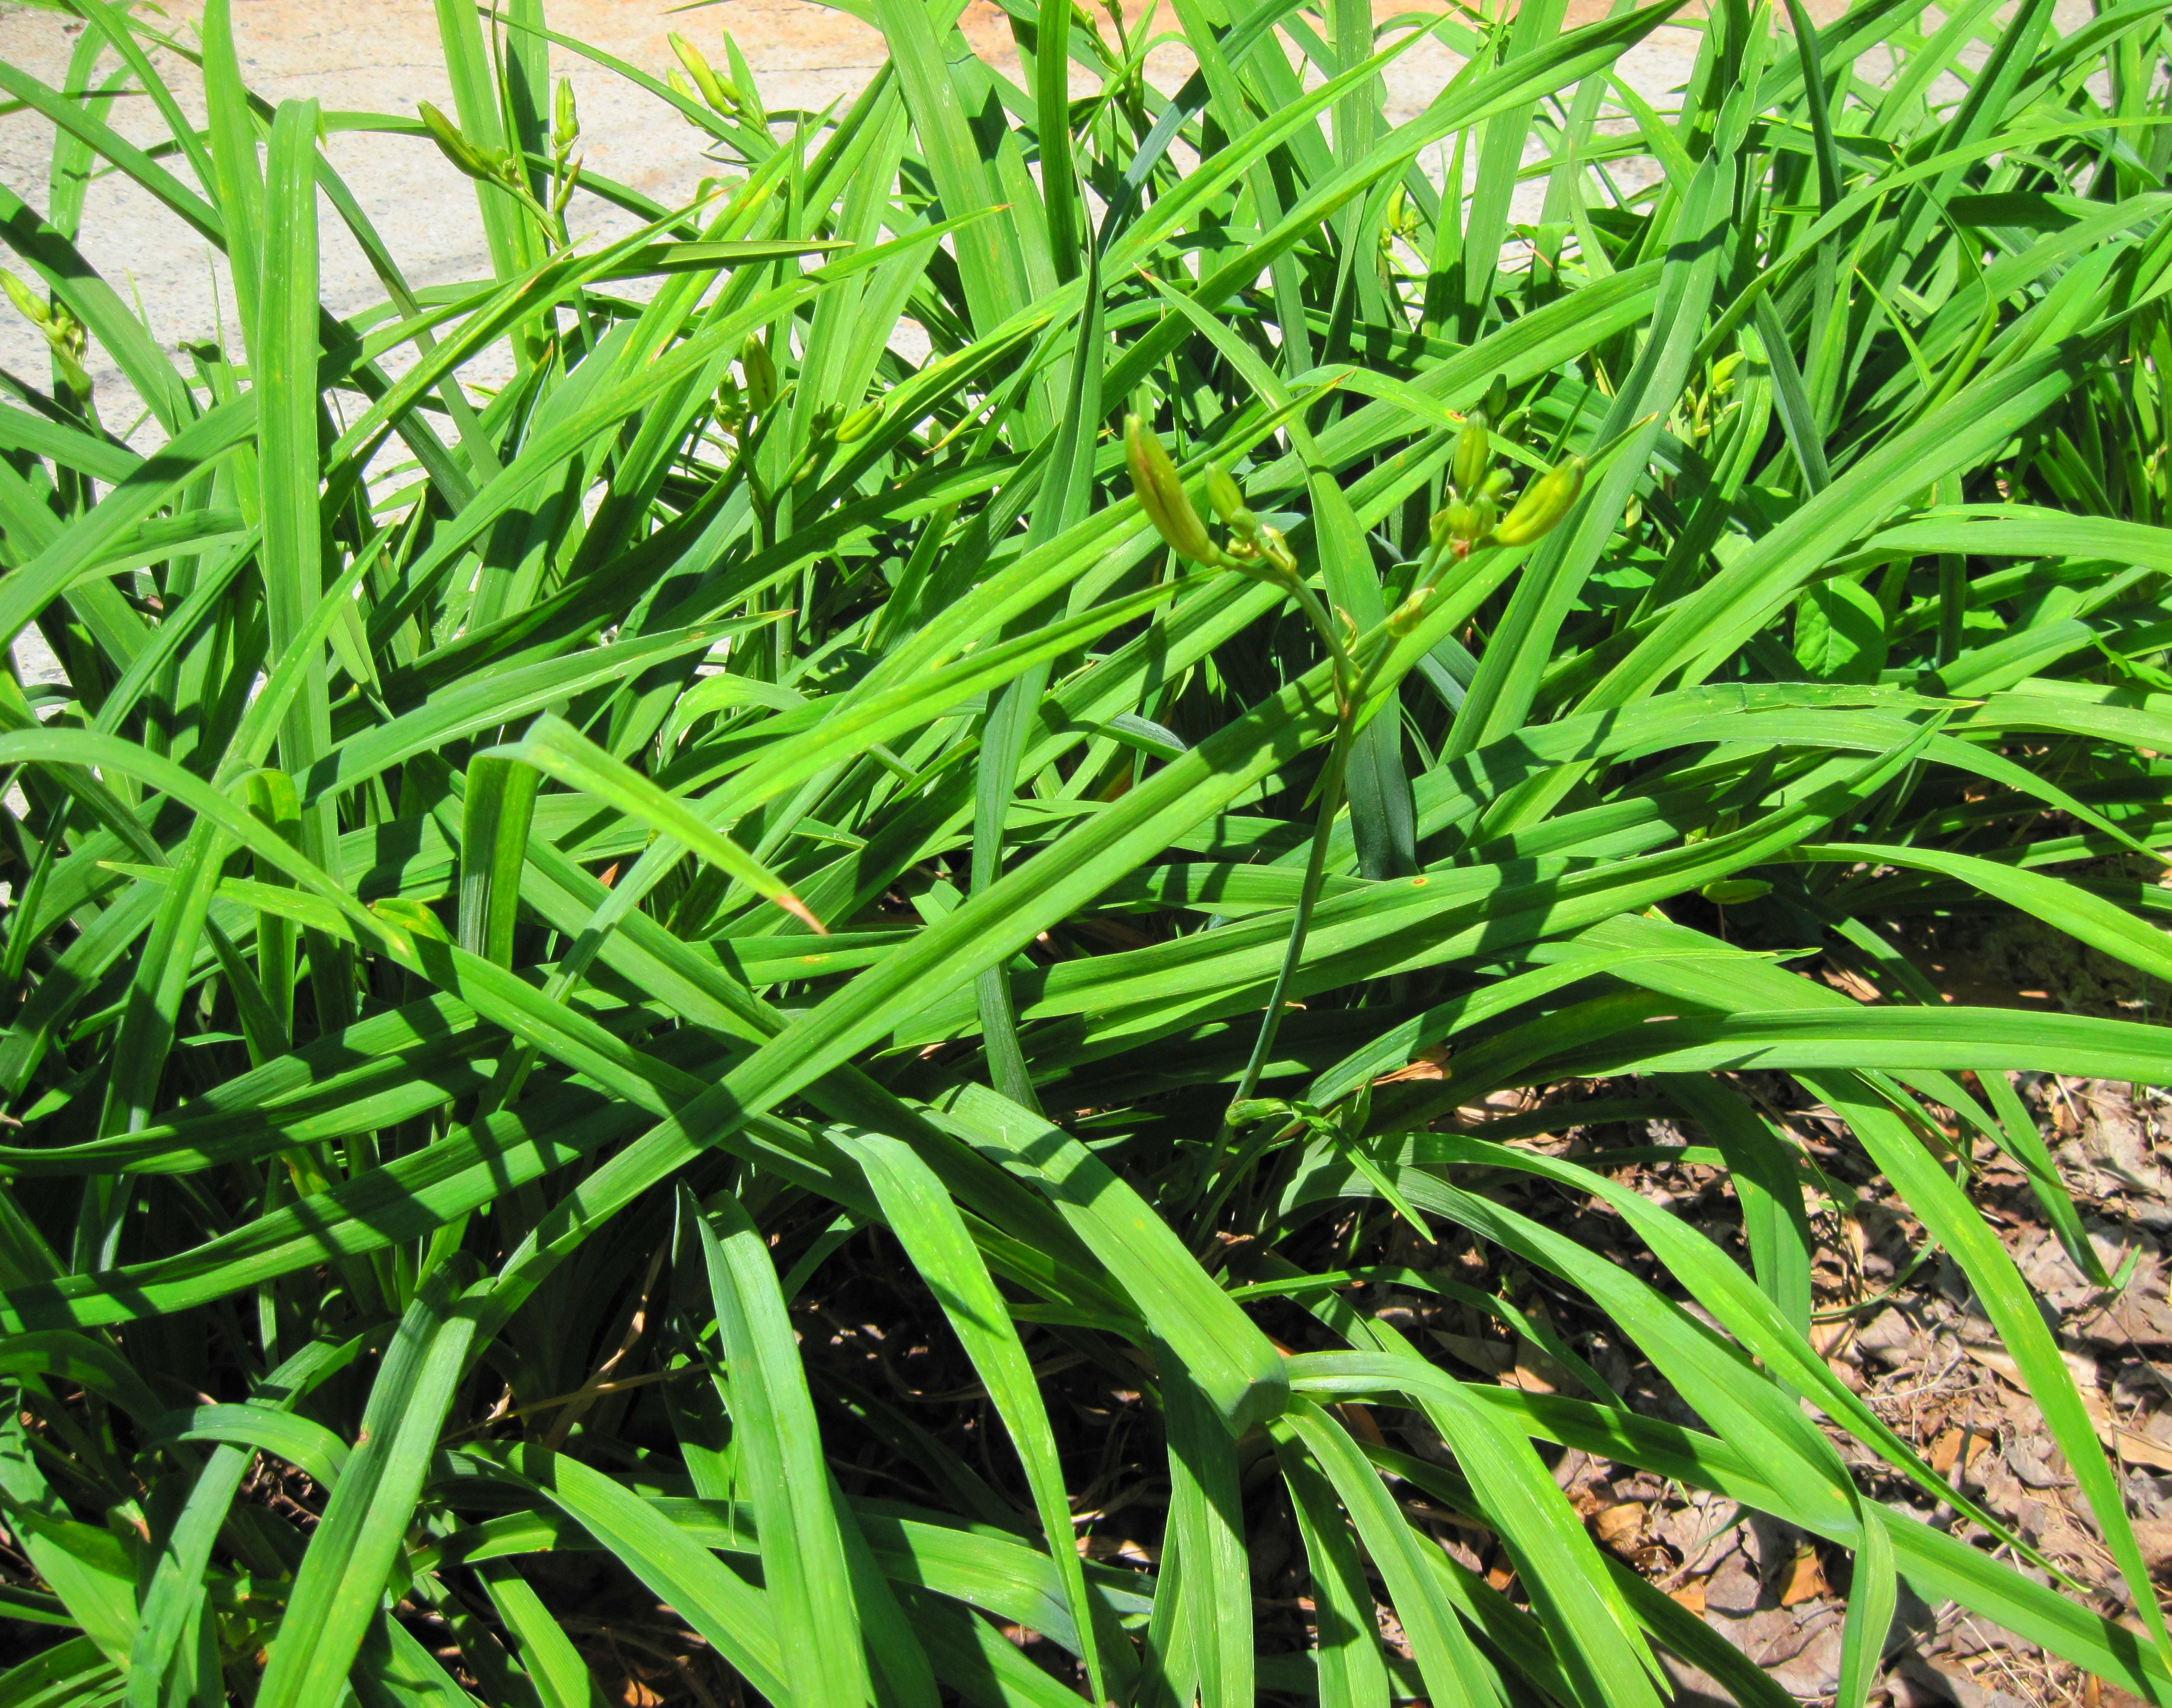 Let S Start With The Most Obvious Ground Cover First If You Have A Lawn Bermuda Grass Aka Devil Probably Because Of Its